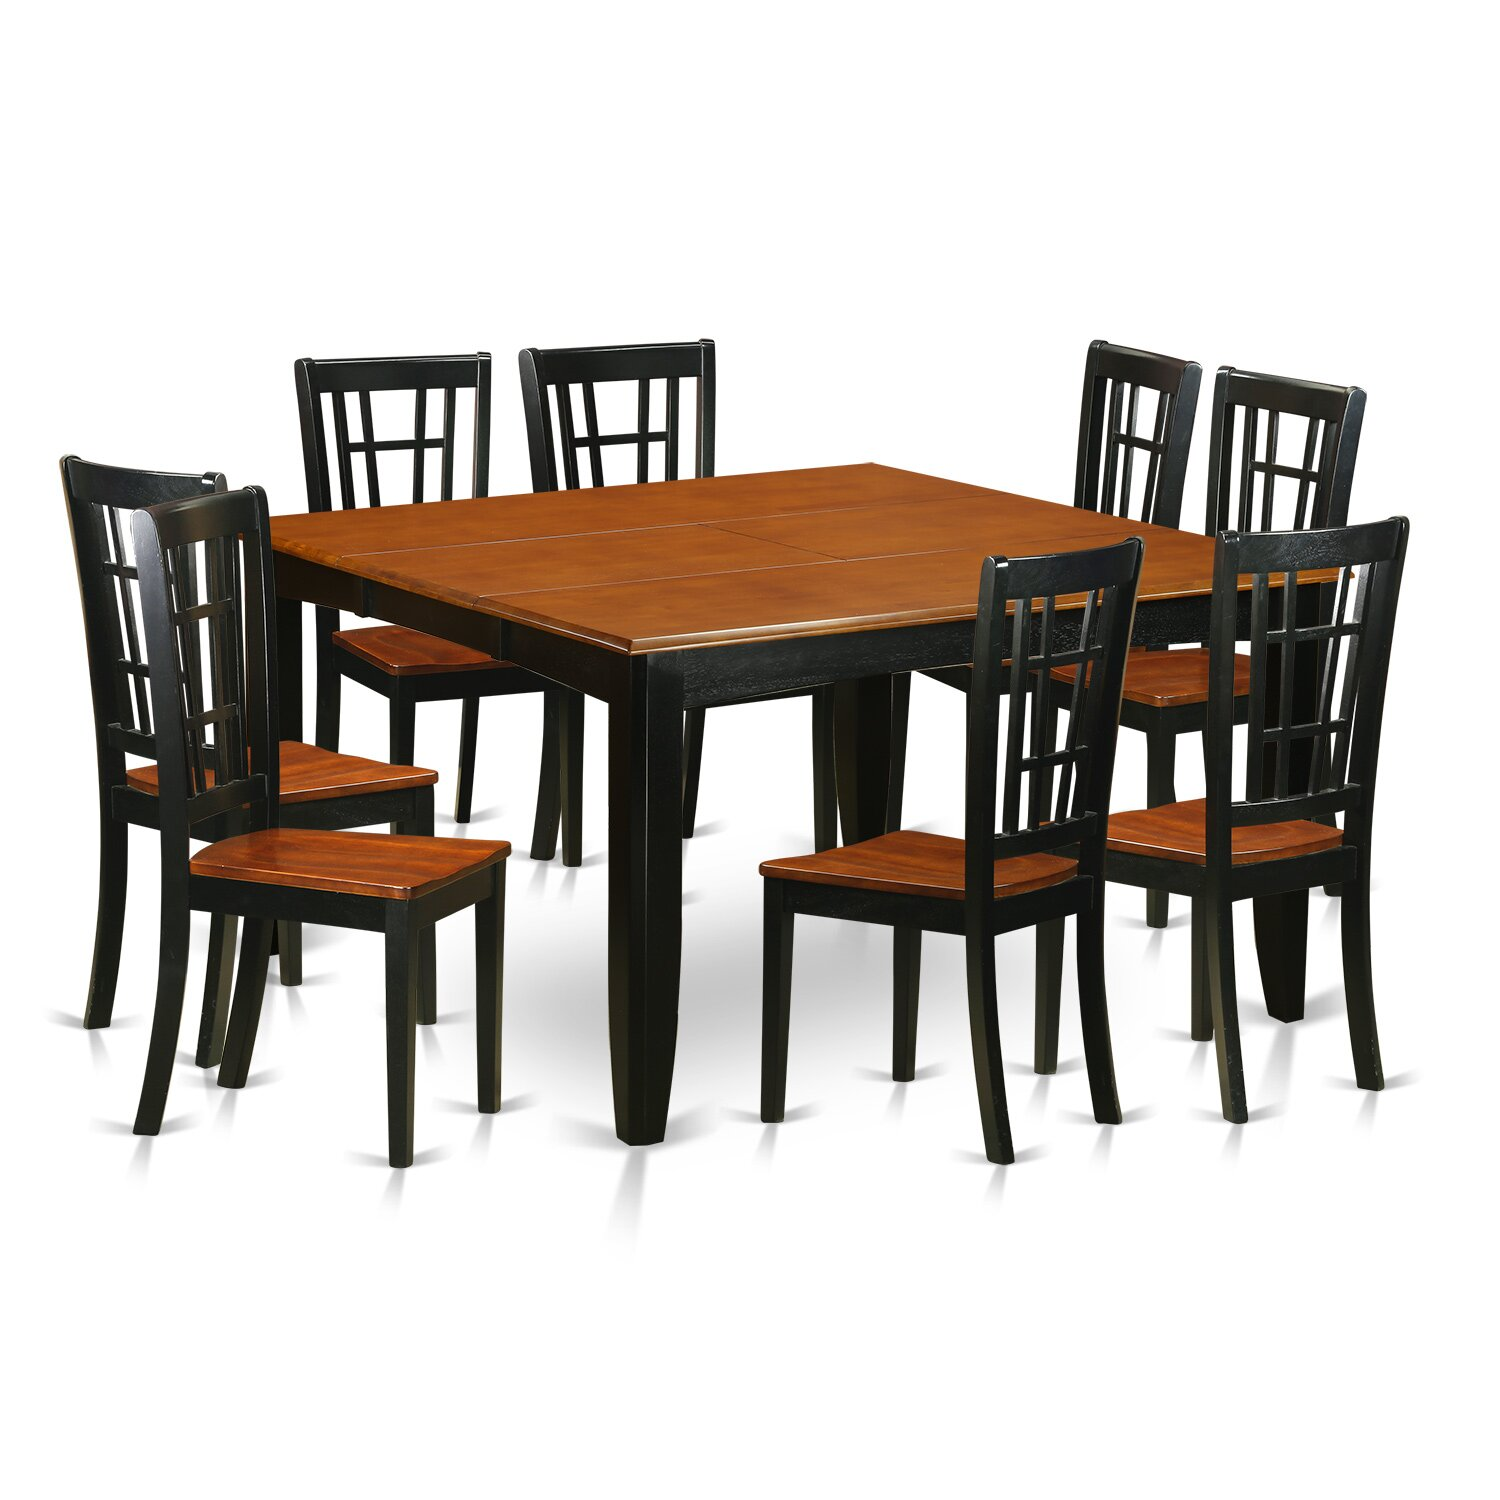 East west parfait 9 piece dining set wayfair for The room furniture